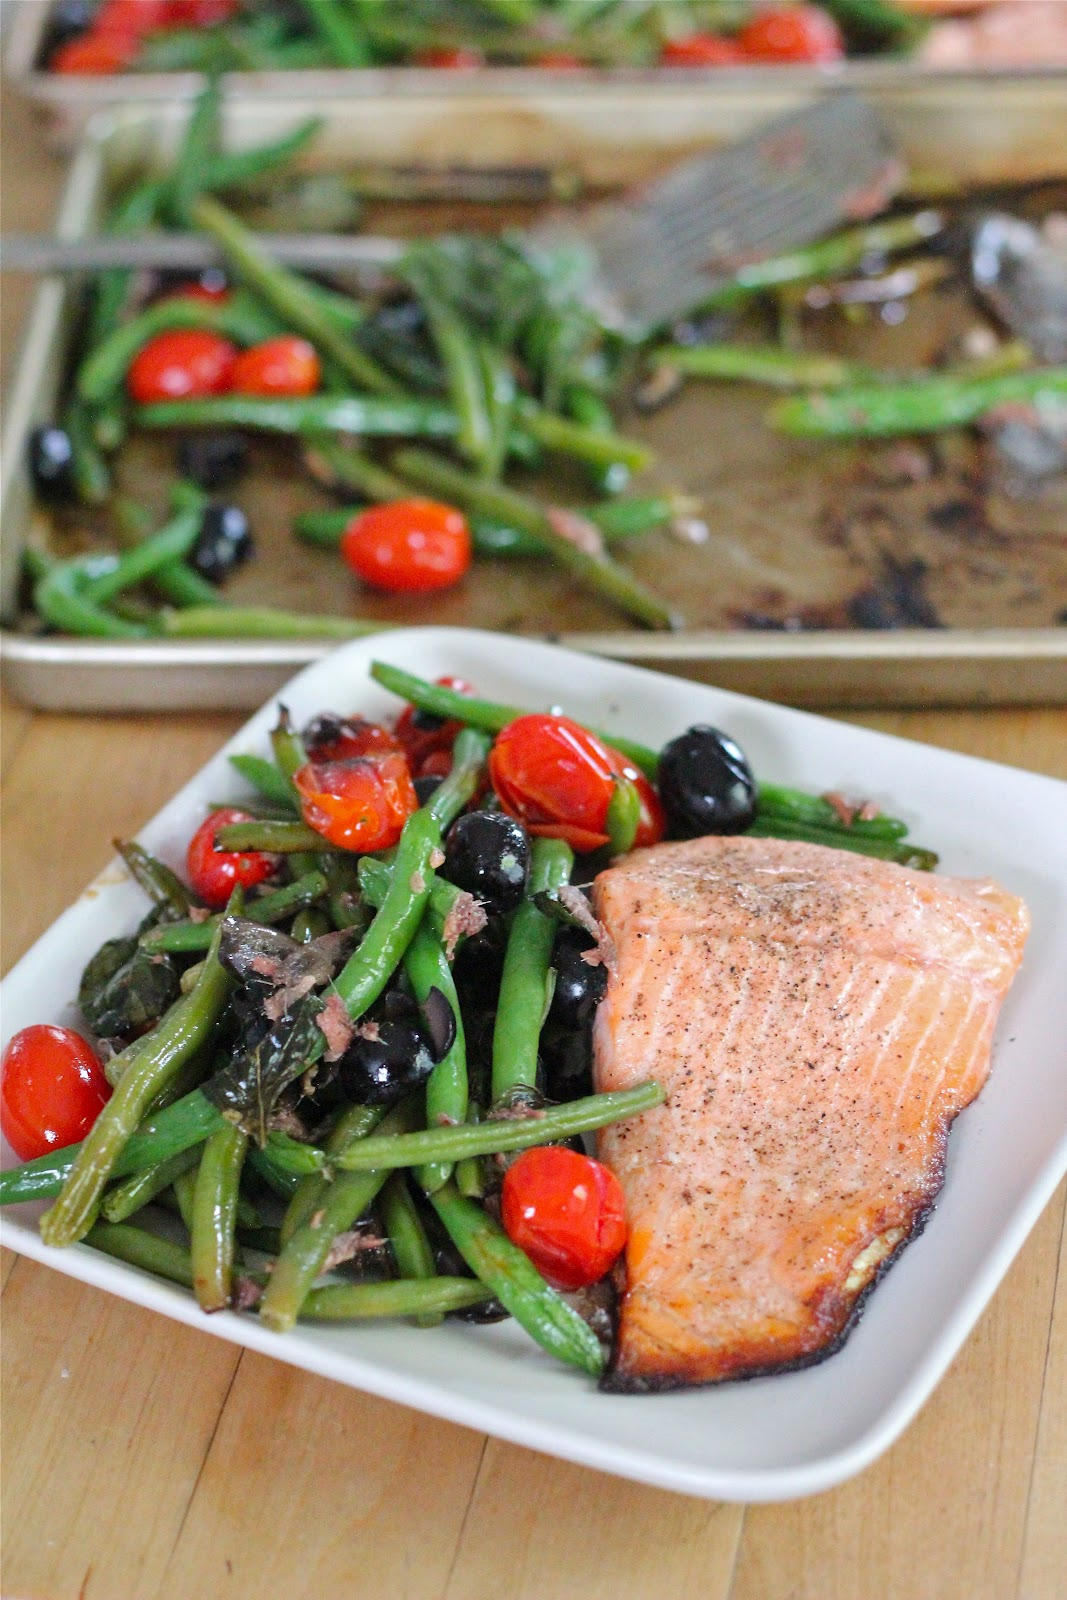 Baked Salmon With Green Beans From Eatgood4life